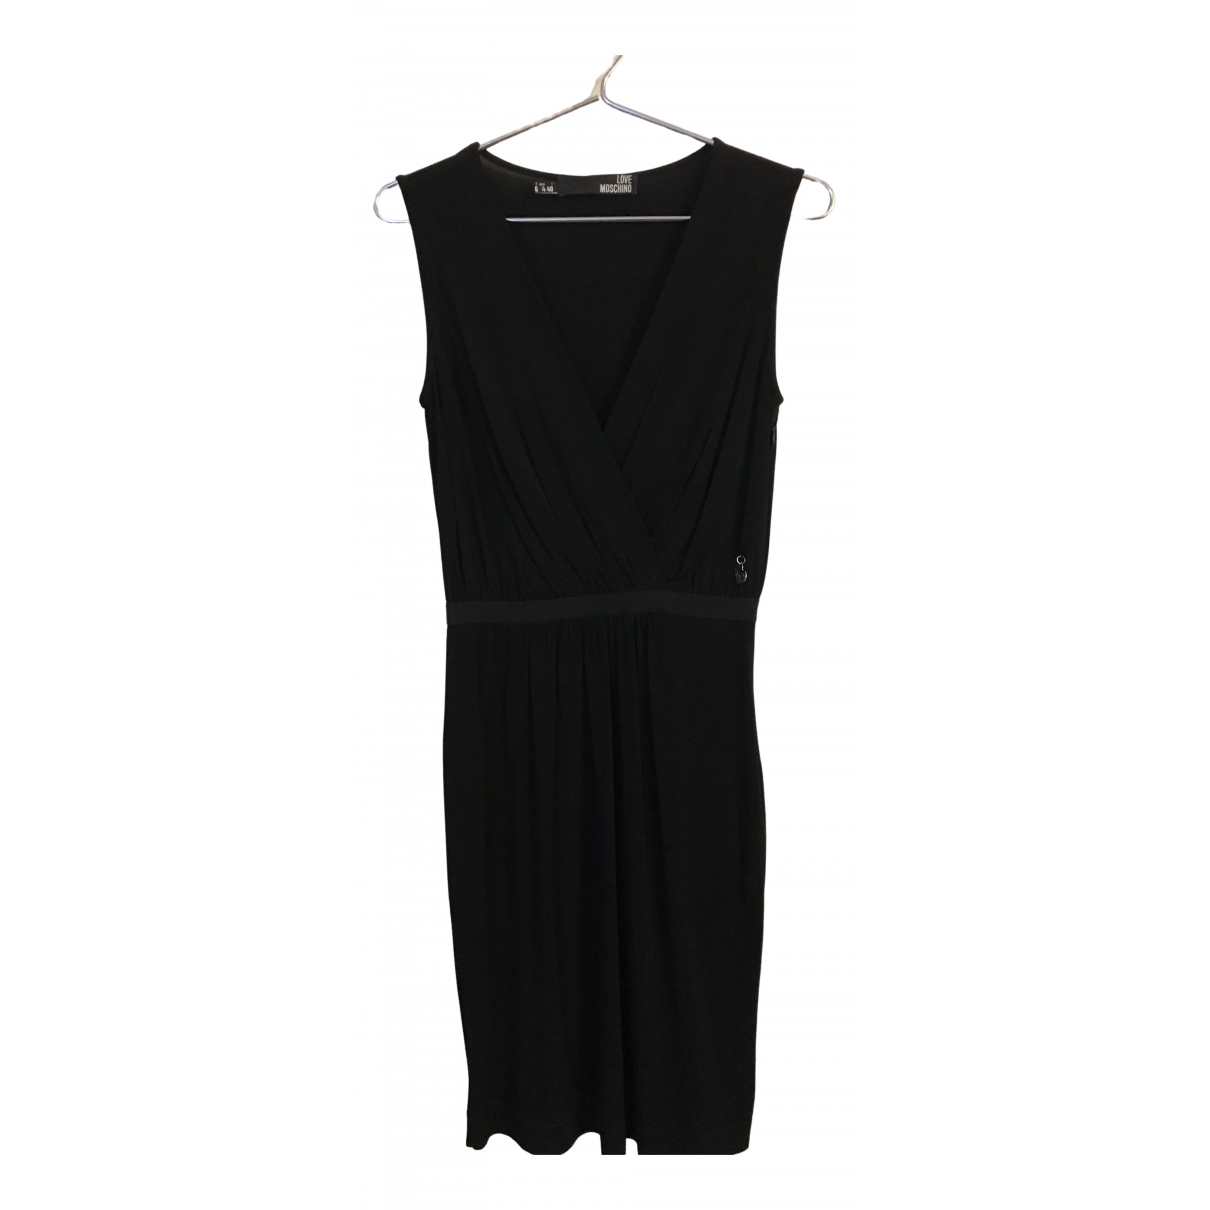 Moschino Love \N Black dress for Women 36 FR